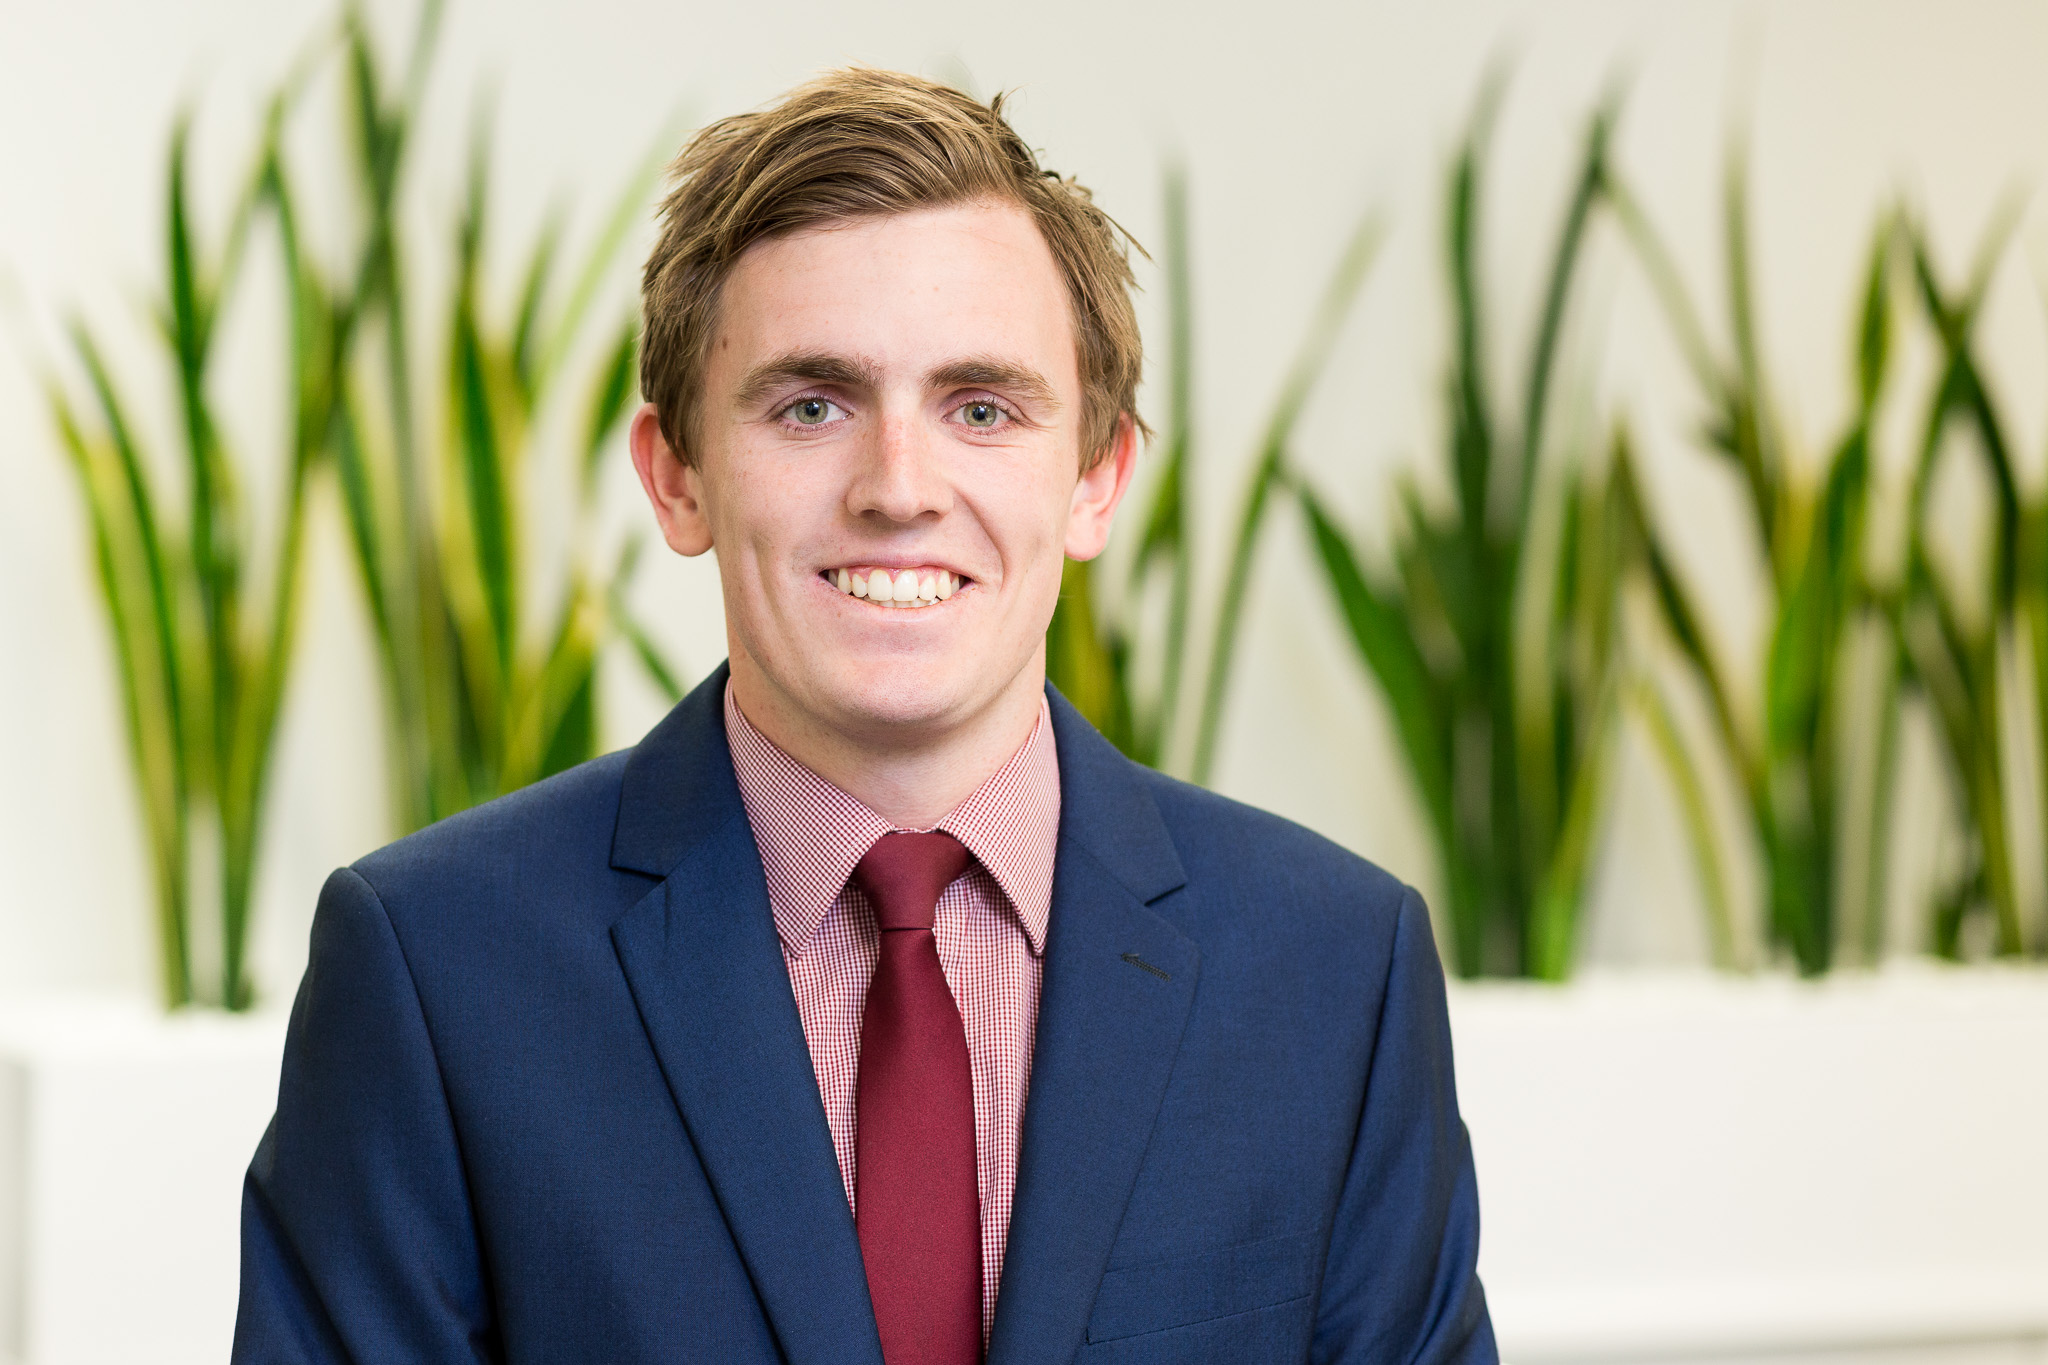 DANIEL MORONEY Accountant   Daniel joined Letcher Moroney in November 2016 as an Undergraduate Accountant completing his Commerce Degree in 2017. Daniel grew up in Adelaide and attended Sacred Heart College where her graduated in 2014. He is currently completing completing his Chartered Accounting qualification.